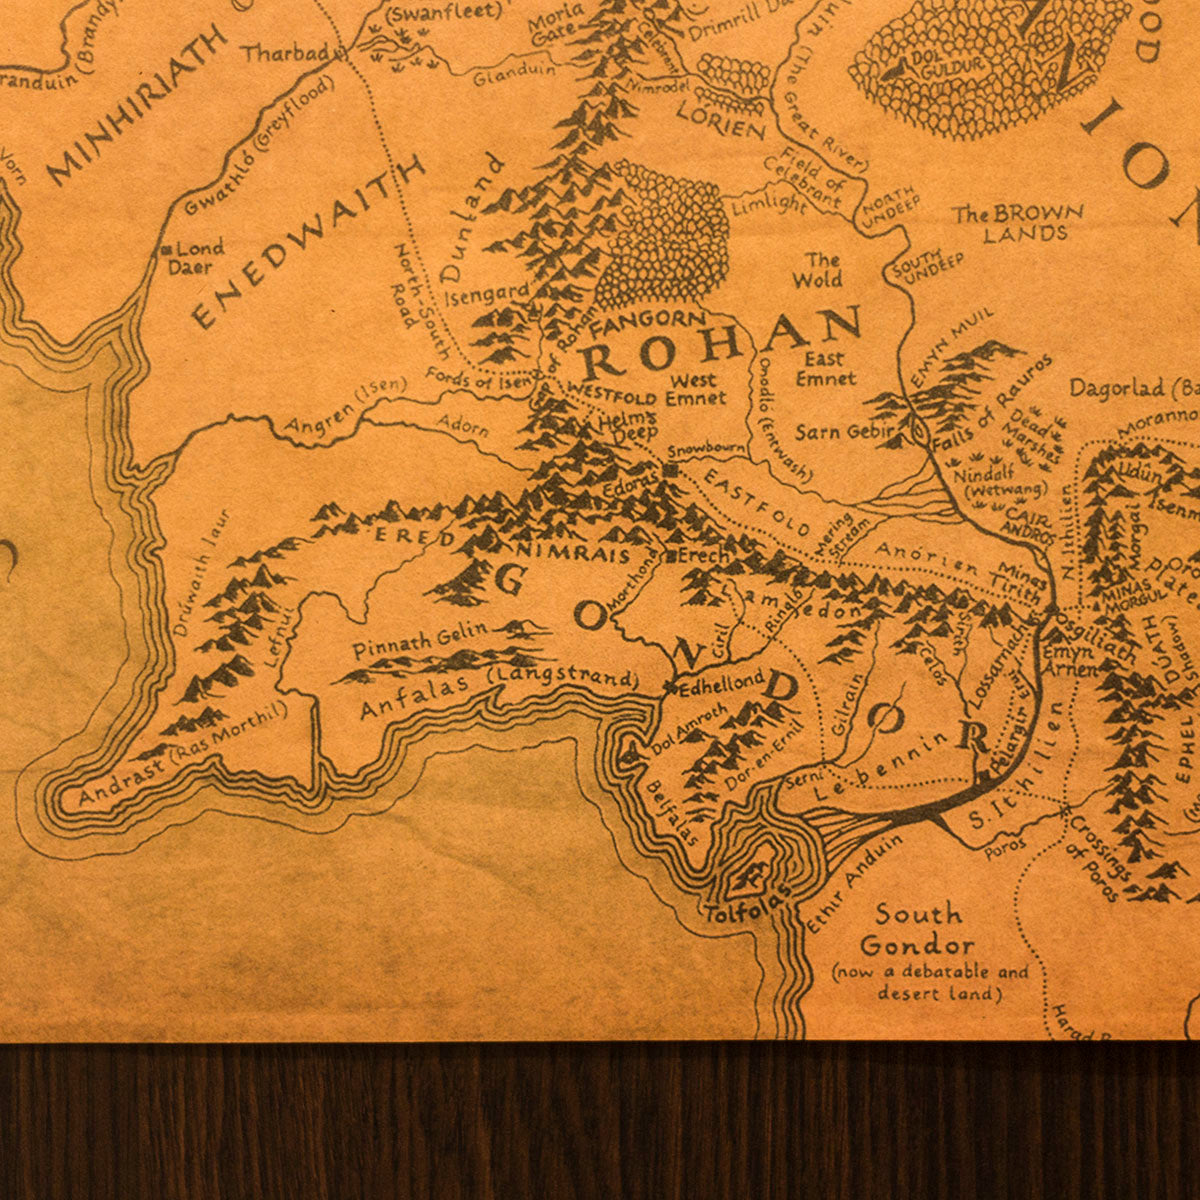 Vintage Middle Earth Map (FREE) | The Golden Galleon on mirkwood map, frodo baggins, rohan map, the lord of the rings, bilbo's map, hobbit map, the hobbit, j. r. r. tolkien, the shire map, rivendell map, tolkien map, dol guldur map, mordor map, beleriand map, silmarillion map, moria map, wheel of time map, gundabad map, gondor map, minas tirith map, eriador map, lord of the rings map, star trek map,